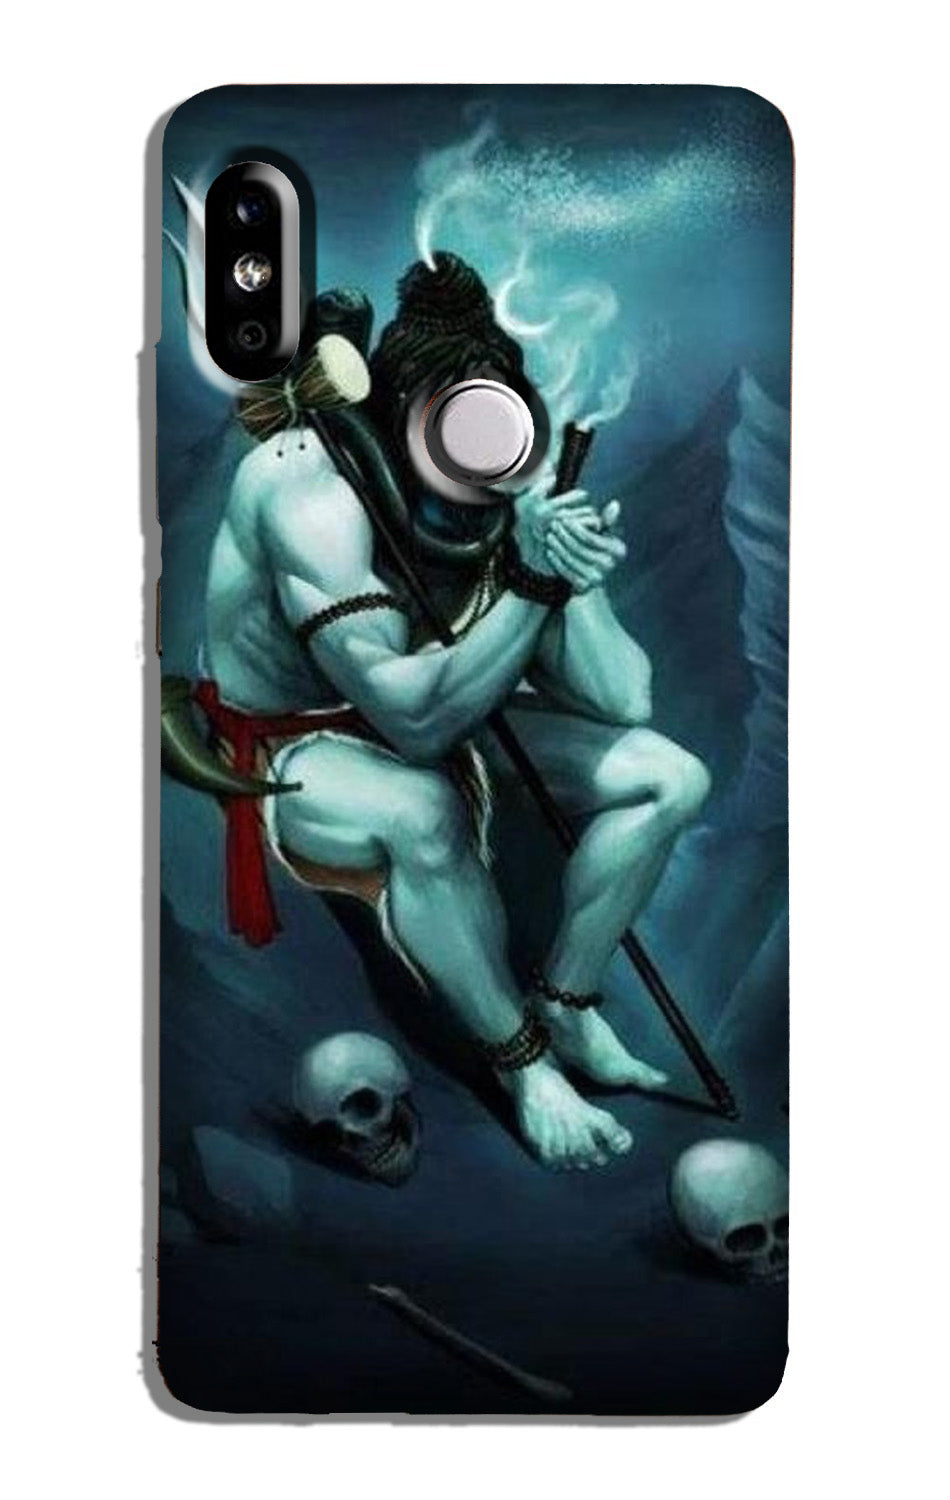 Lord Shiva Mahakal  Case for Redmi 6 Pro